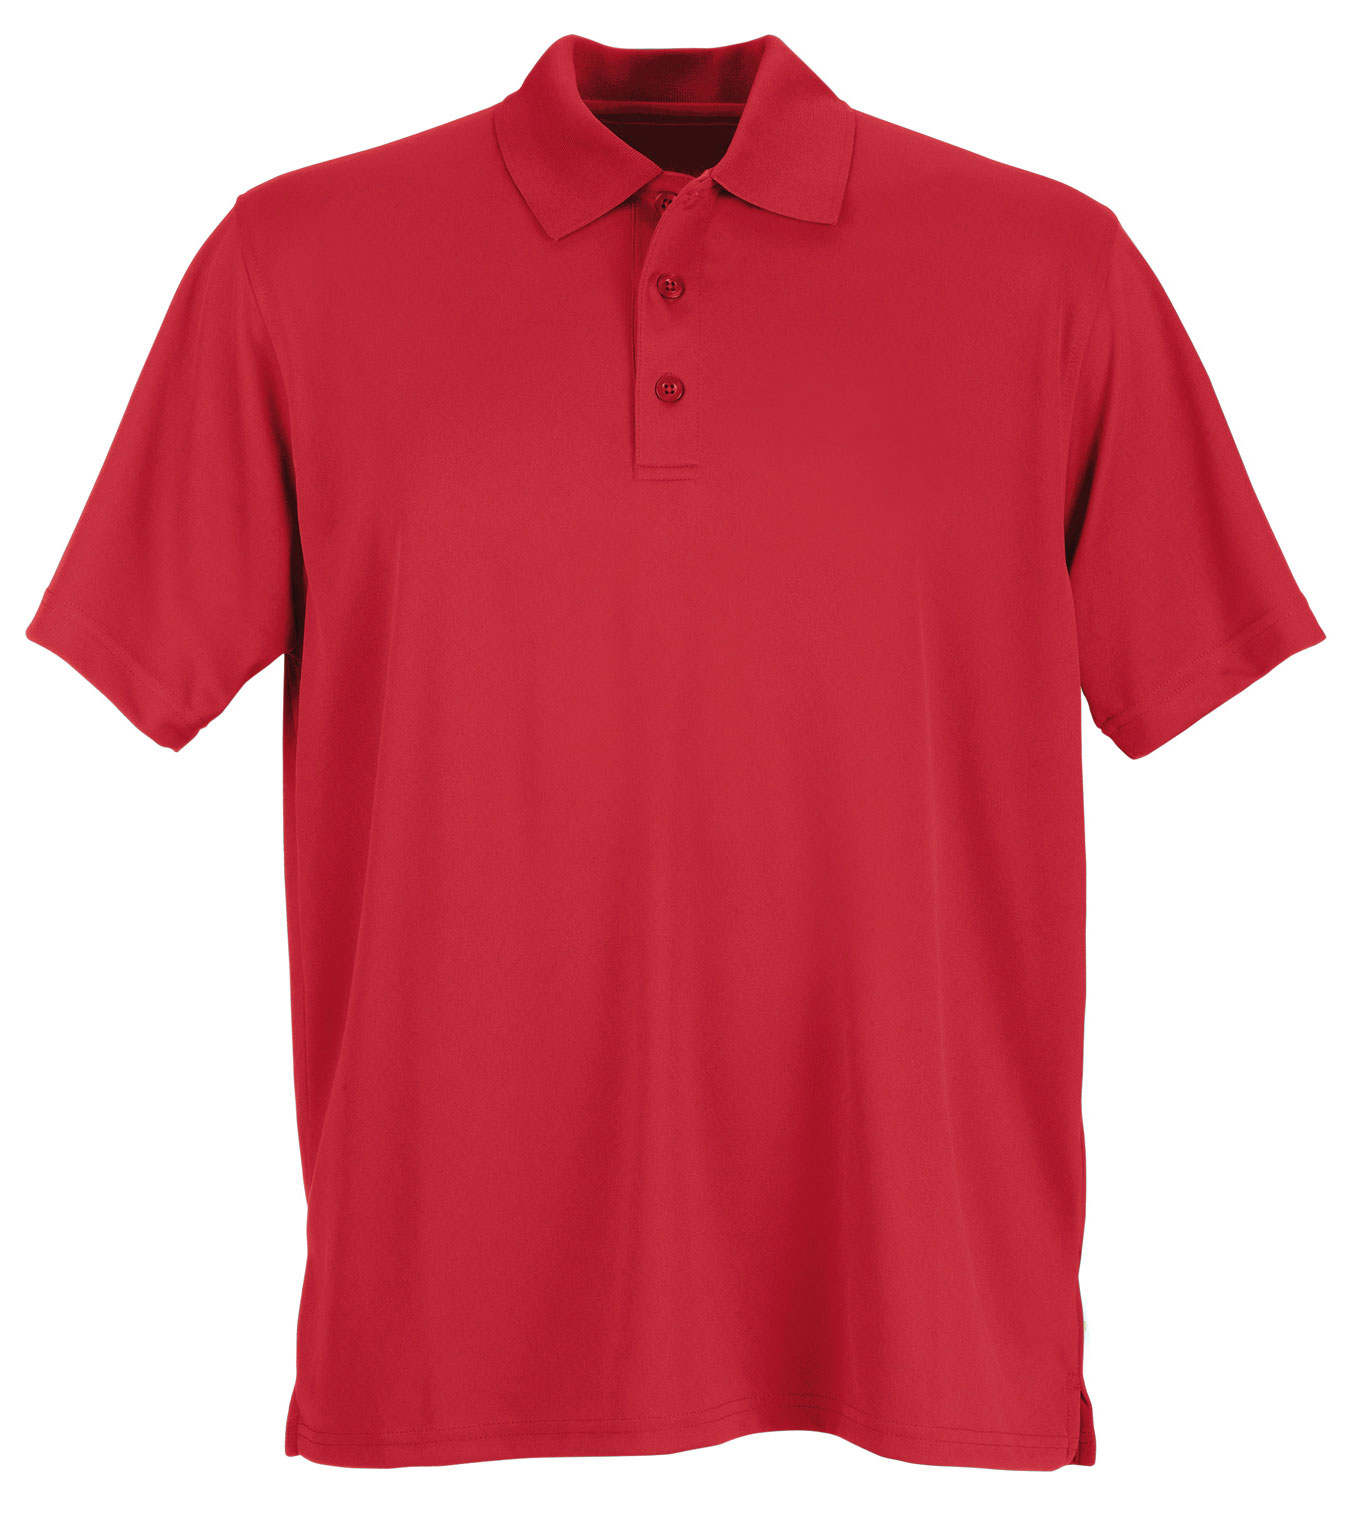 Vansport™ Omega Mens Solid Mesh Tech Polo